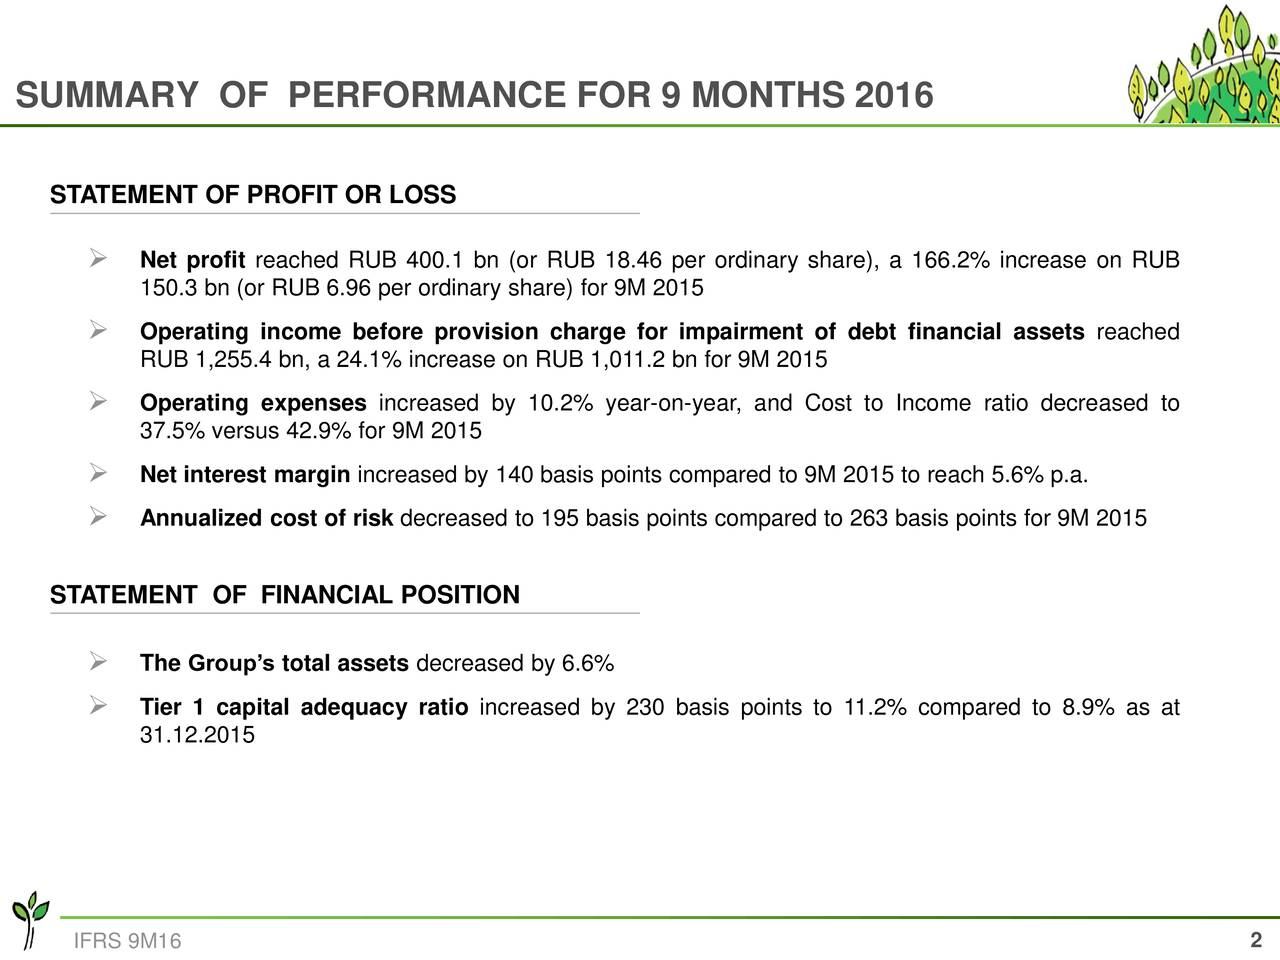 STATEMENT OF PROFIT OR LOSS Net profit reached RUB 400.1 bn (or RUB 18.46 per ordinary share), a 166.2% increase on RUB 150.3 bn (or RUB 6.96 per ordinary share) for 9M 2015 Operating income before provision charge for impairment of debt financial assets reached RUB 1,255.4 bn, a 24.1% increase on RUB 1,011.2 bn for 9M 2015 Operating expenses increased by 10.2% year-on-year, and Cost to Income ratio decreased to 37.5% versus 42.9% for 9M 2015 Net interest margin increased by 140 basis points compared to 9M 2015 to reach 5.6% p.a. Annualized cost of risk decreased to 195 basis points compared to 263 basis points for 9M 2015 STATEMENT OF FINANCIAL POSITION The Groups total assets decreased by 6.6% Tier 1 capital adequacy ratio increased by 230 basis points to 11.2% compared to 8.9% as at 31.12.2015 2